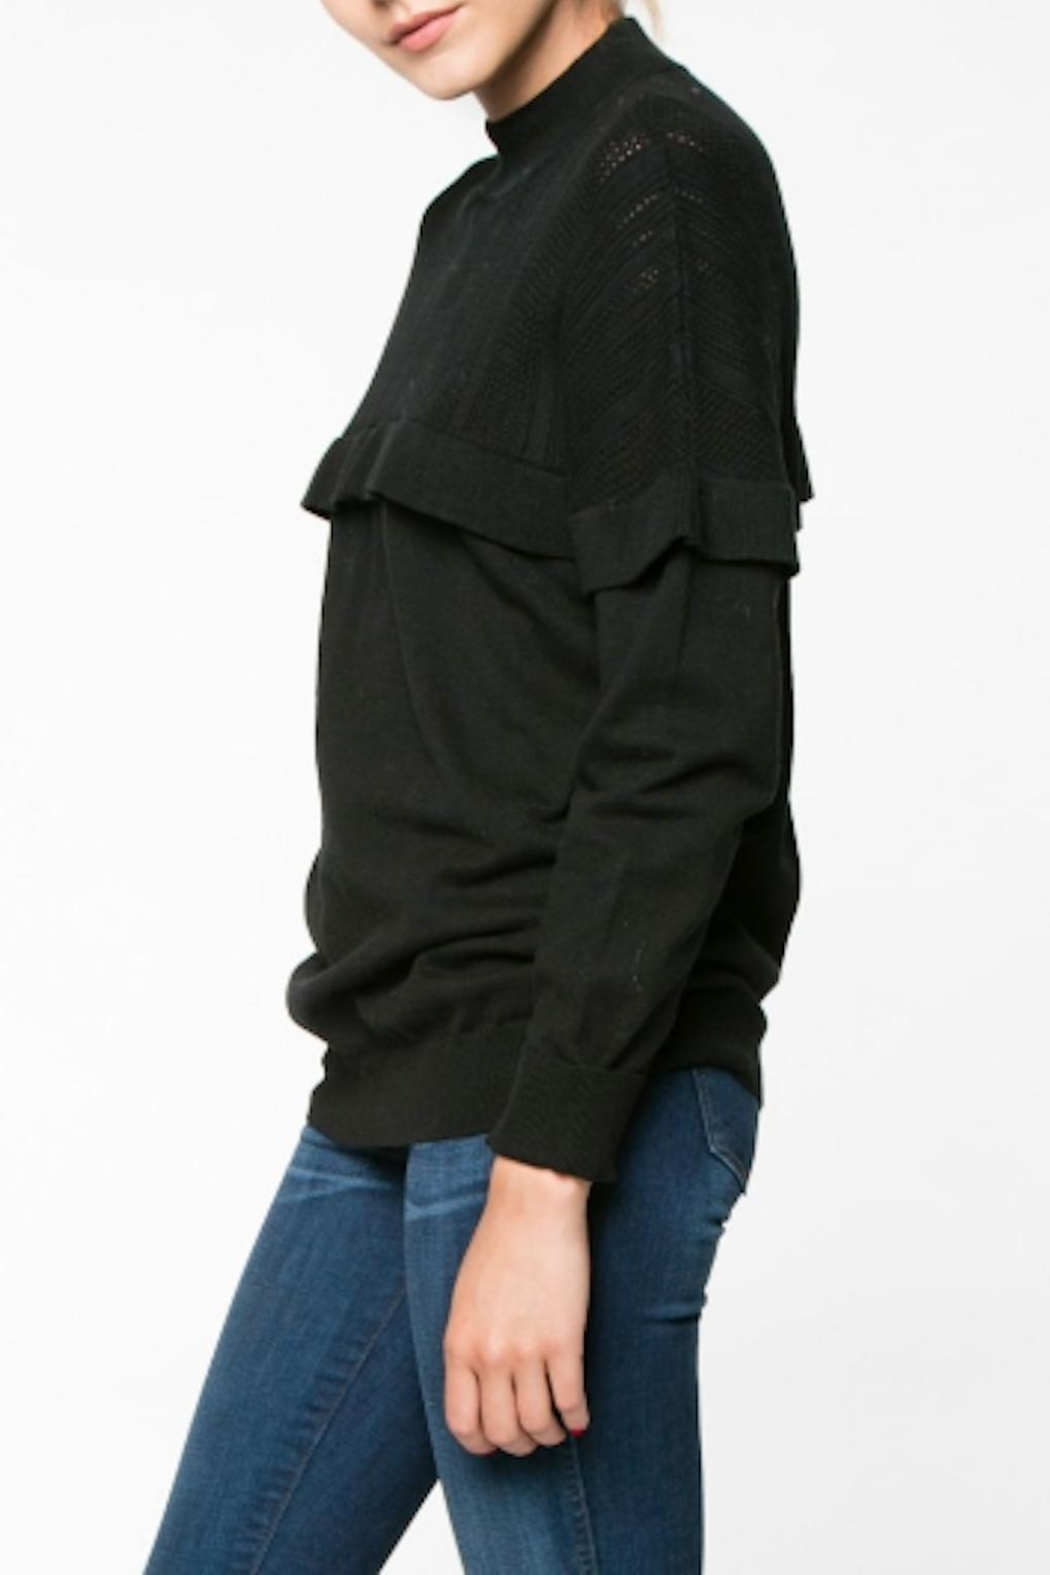 Everly Ruffle Sweater - Front Full Image